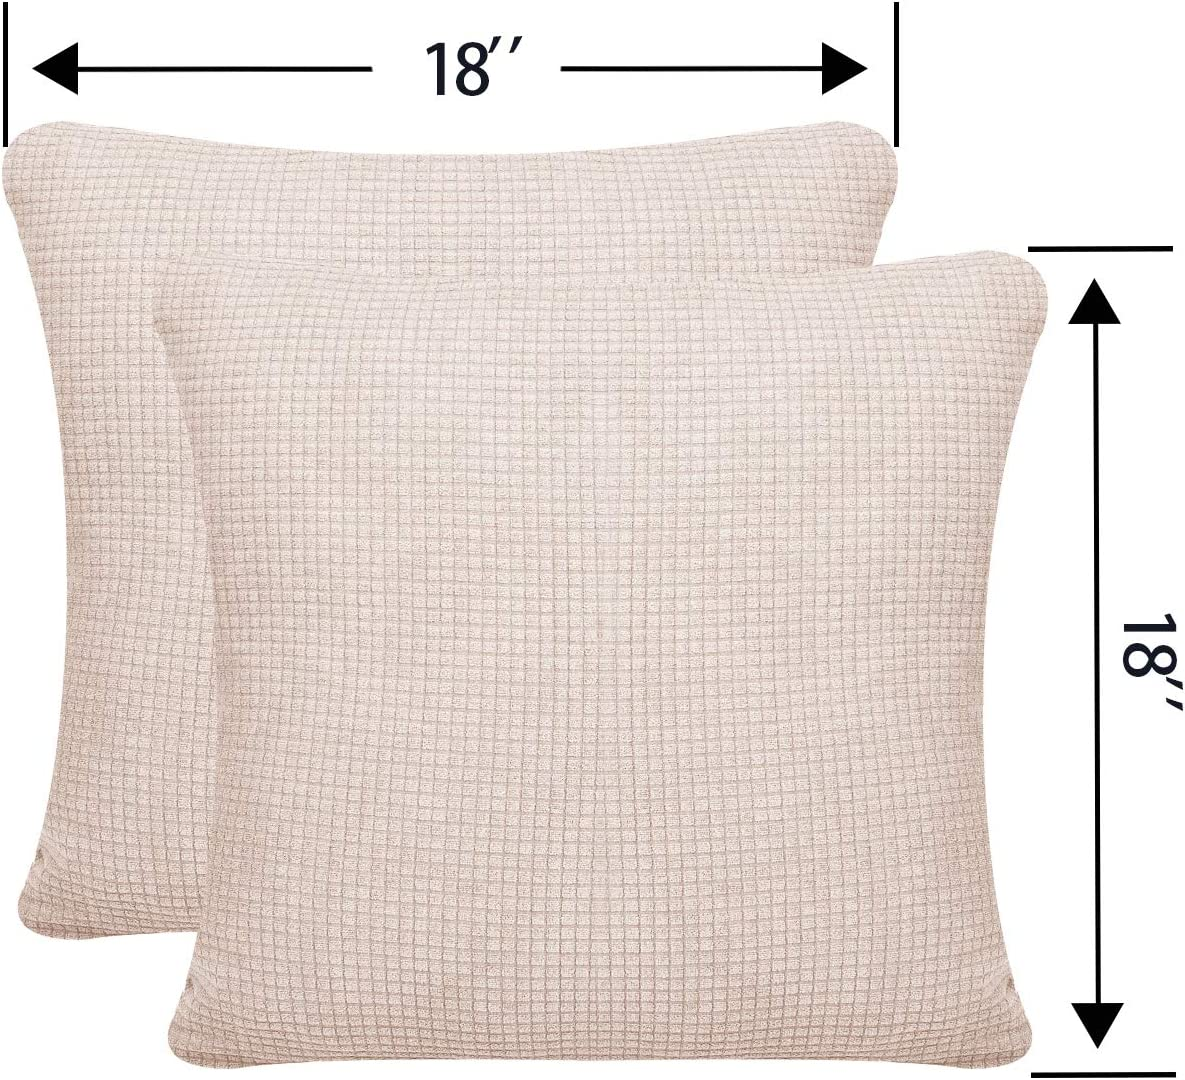 Granbest High Stretch Sofa Throw Pillow Covers Water-Repellent Square Pillowcases Couch Cushion Covers Set of 2 Black, Pillowcases 18x18